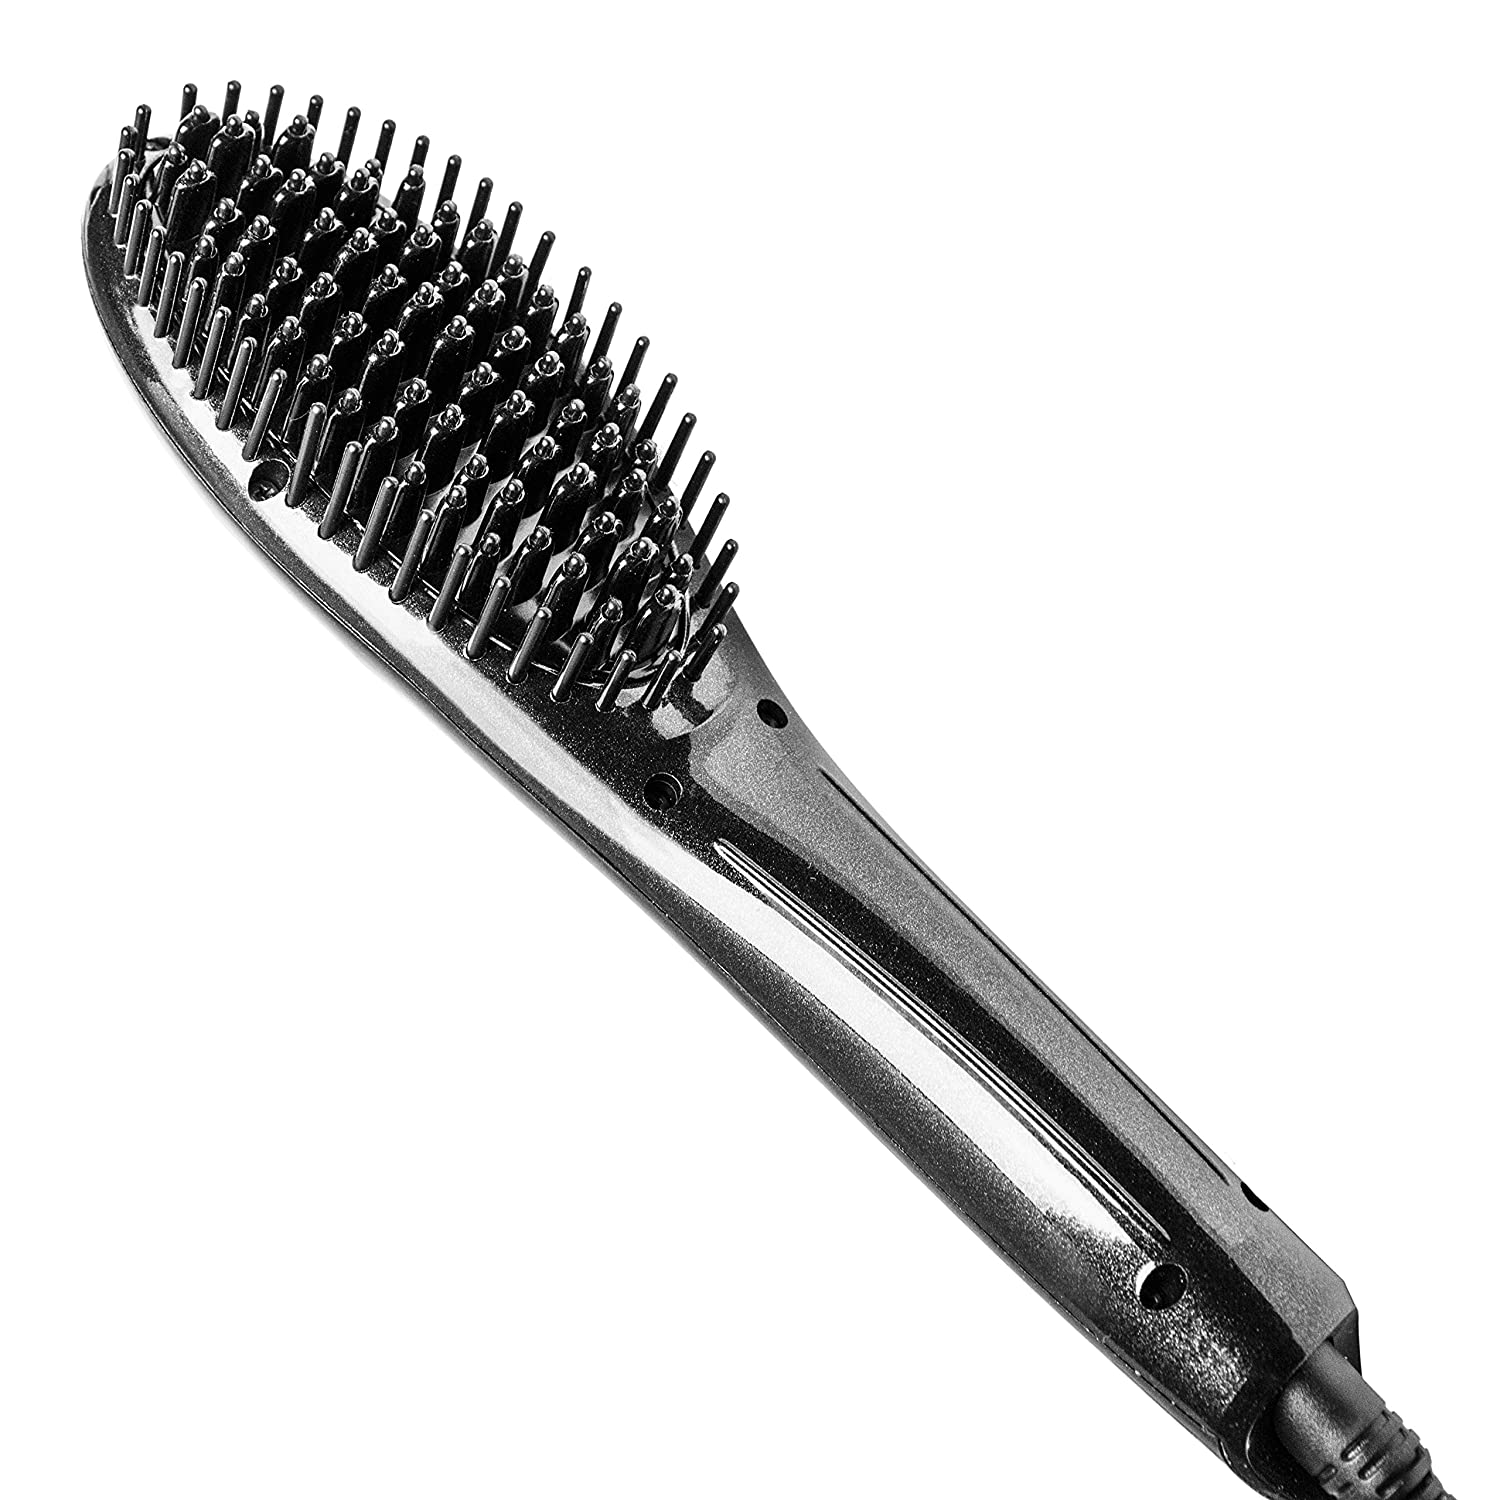 Top 10 Best Hair Straightener Brush – Hair Straightening Reviews in 2020 7